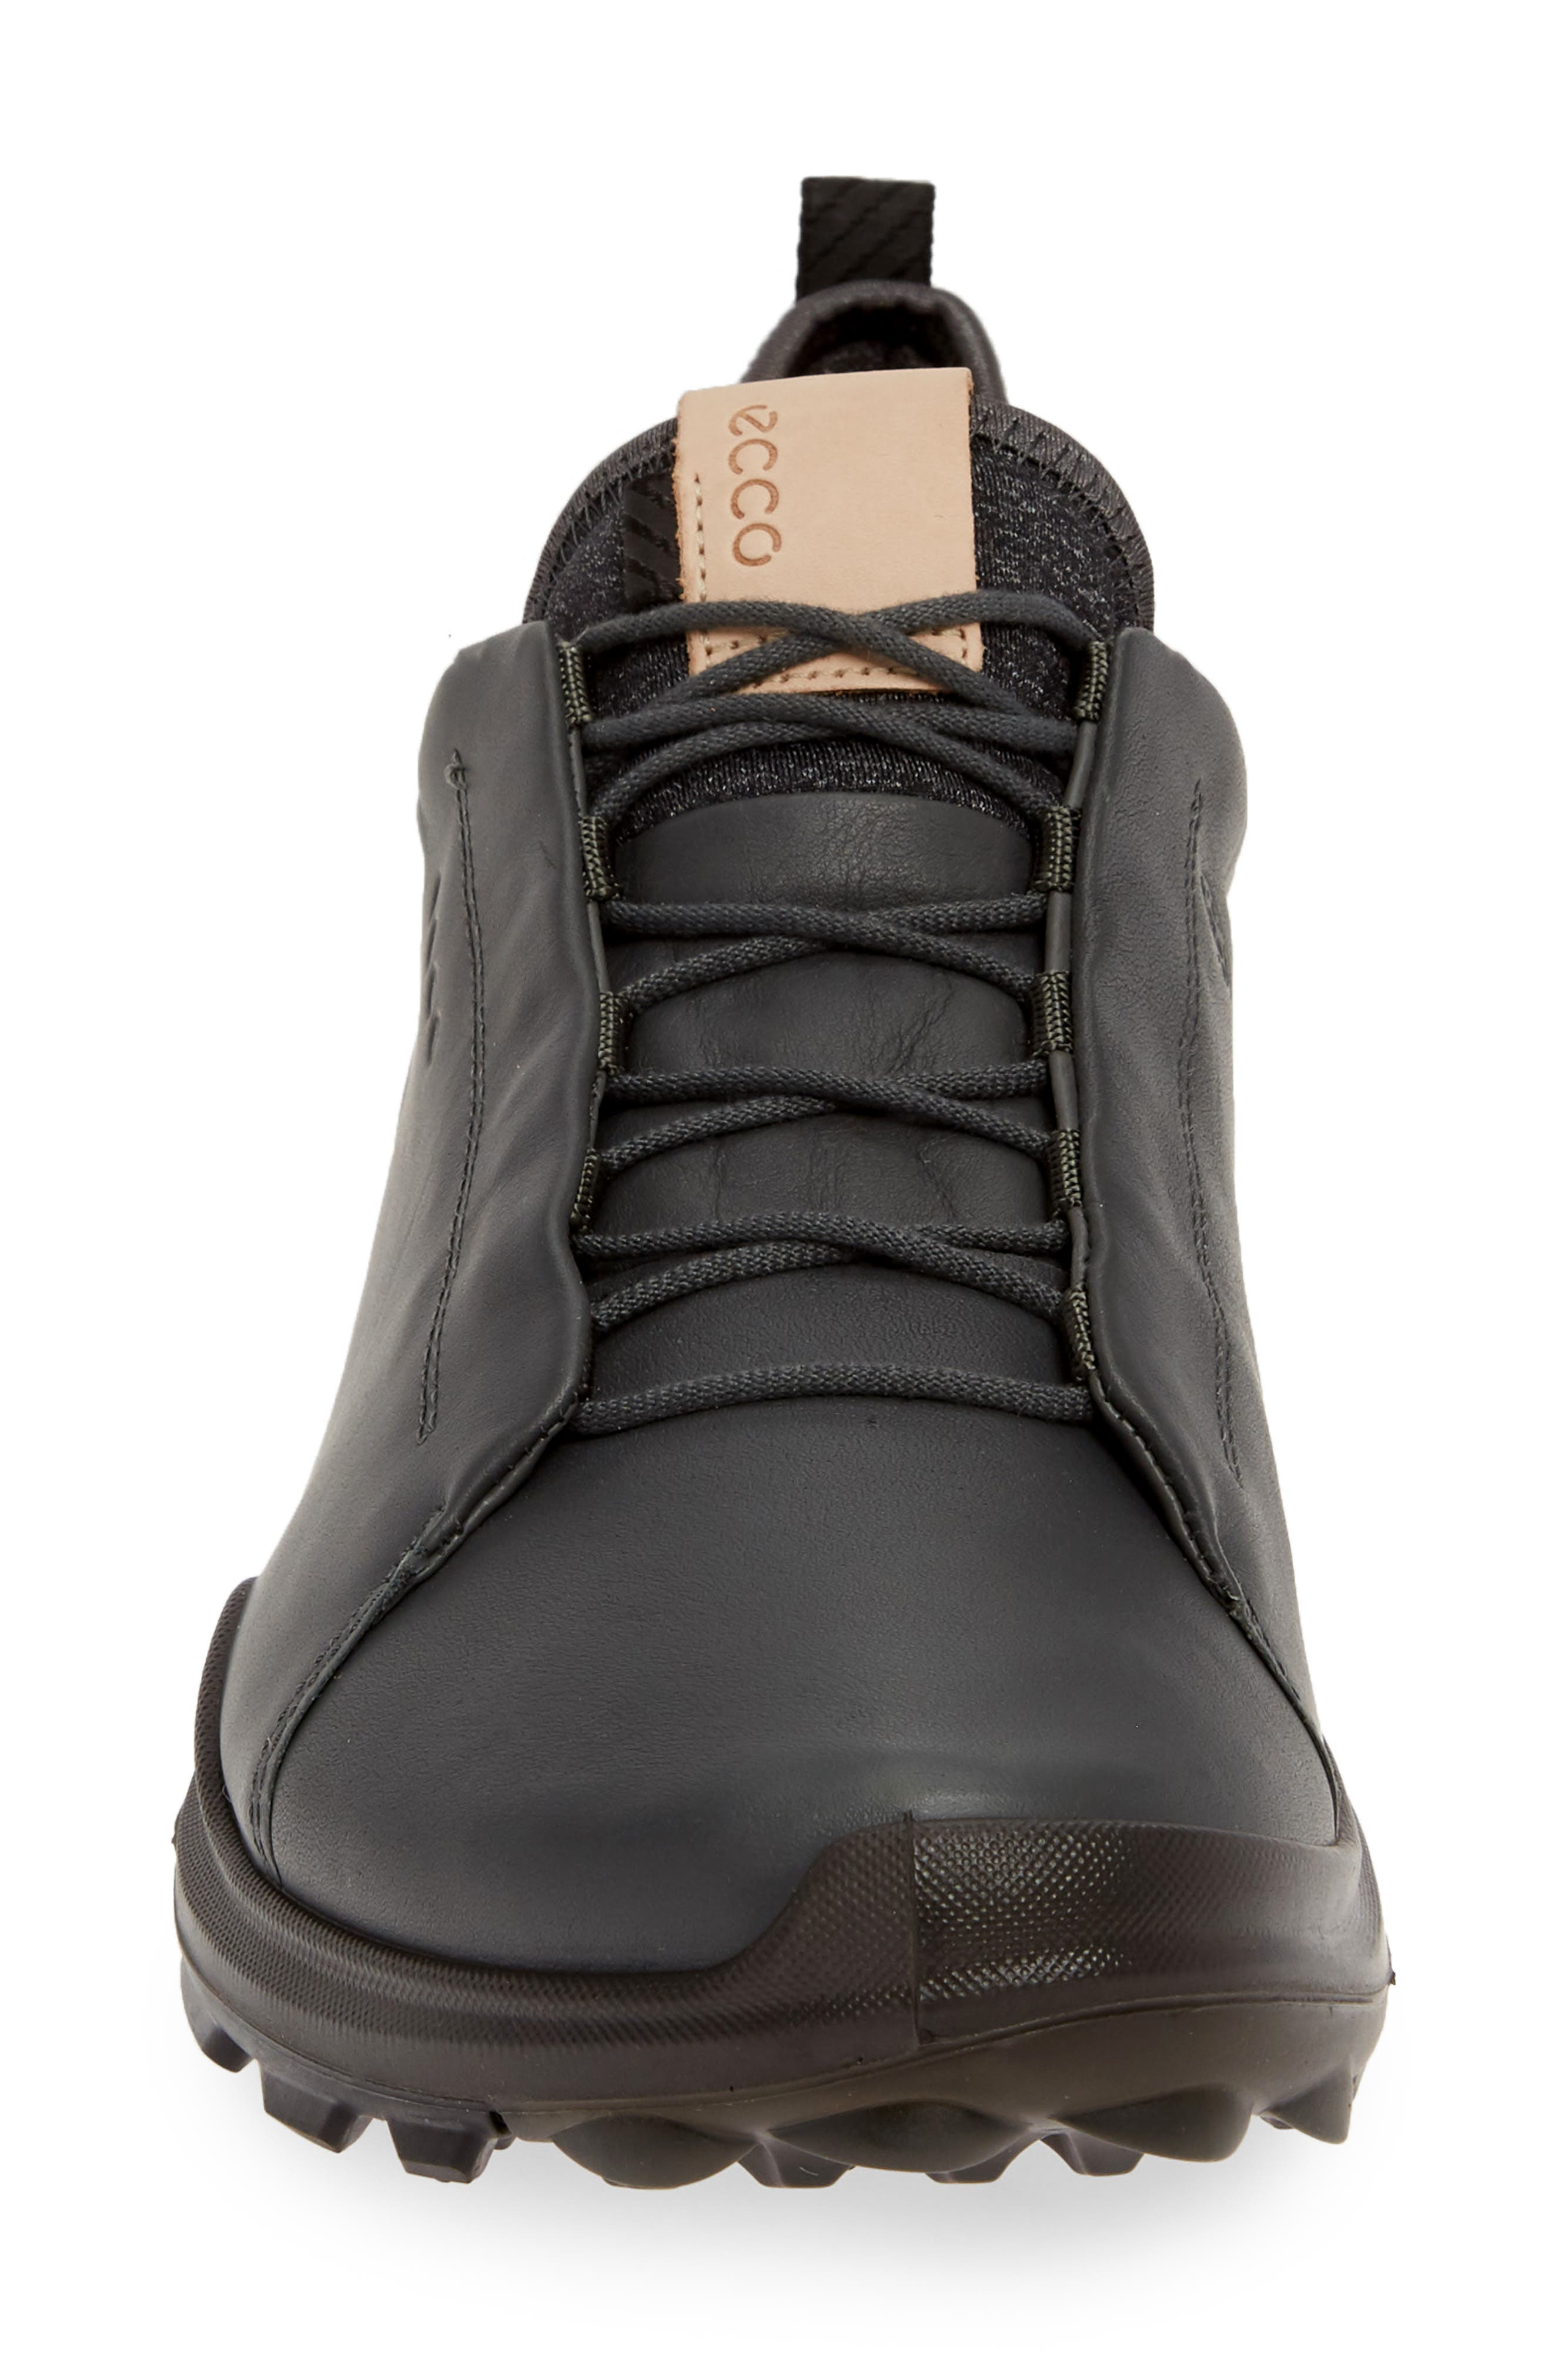 ECCO, BIOM<sup>®</sup> Hybrid 3 OL Gore-Tex<sup>®</sup> Golf Shoe, Alternate thumbnail 4, color, DARK SHADOW LEATHER